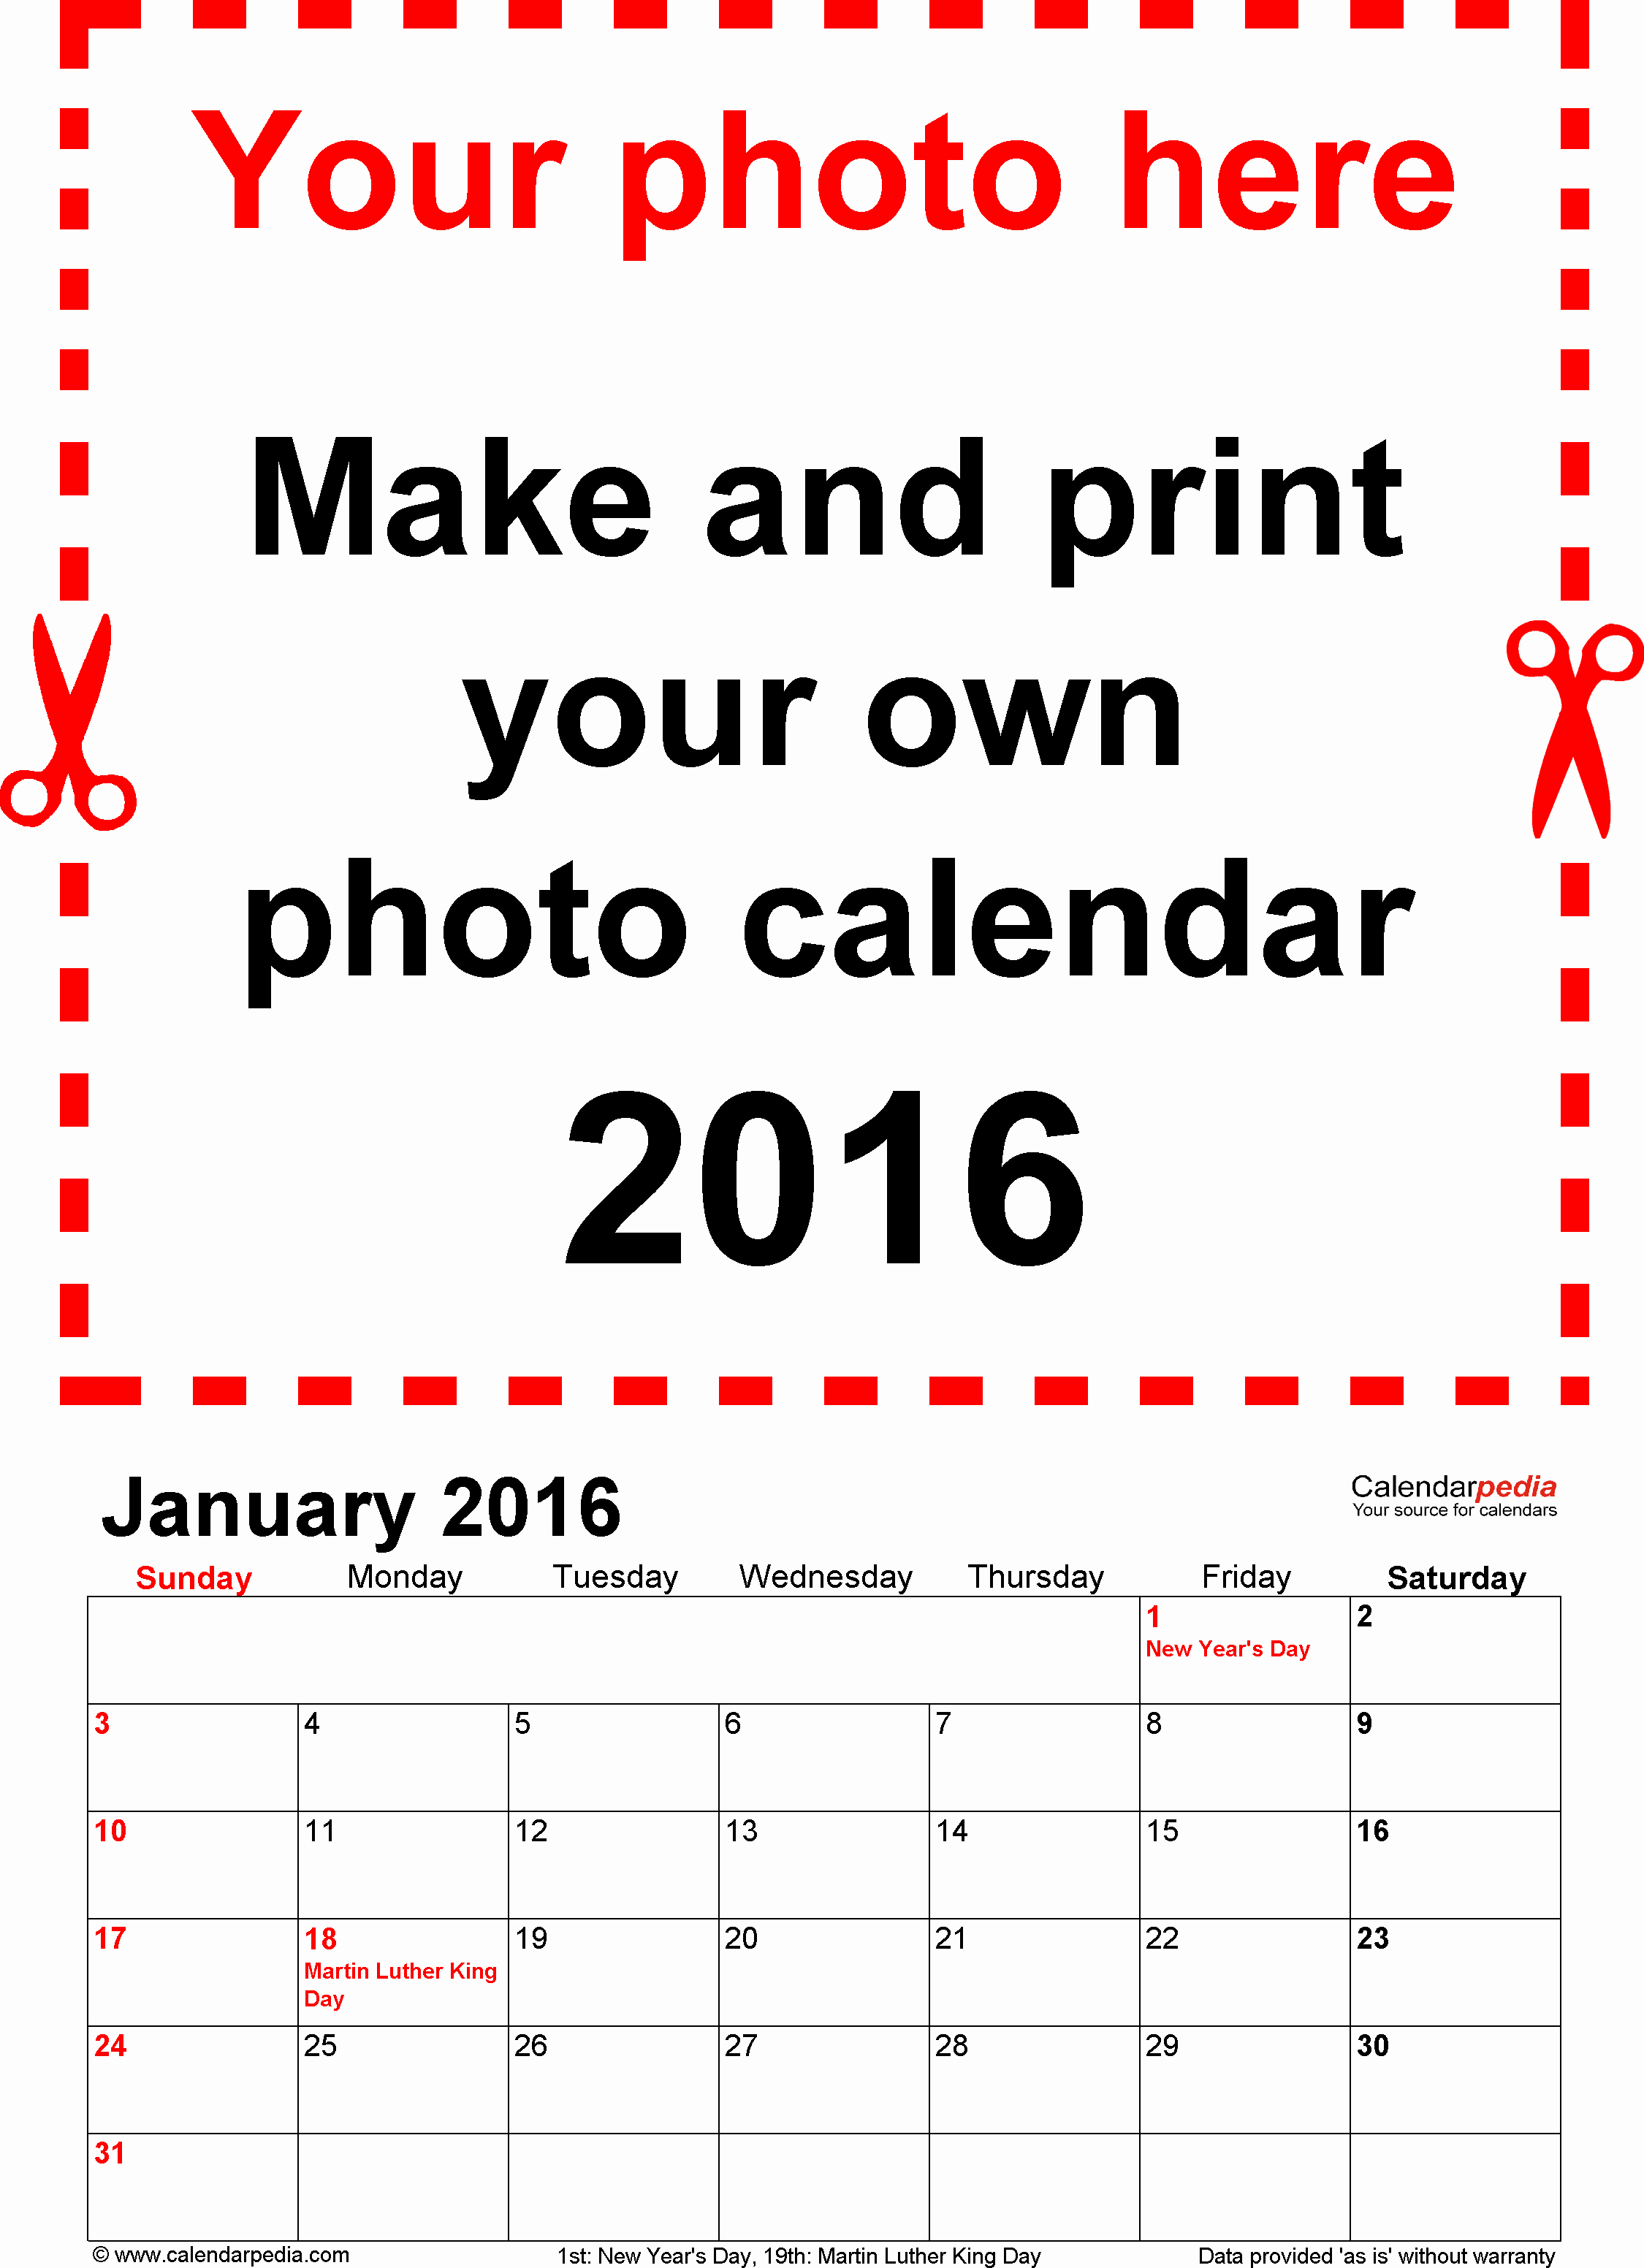 Free Printable Calendar 2016 Templates Unique Calendar 2016 Free Printable Word Templates